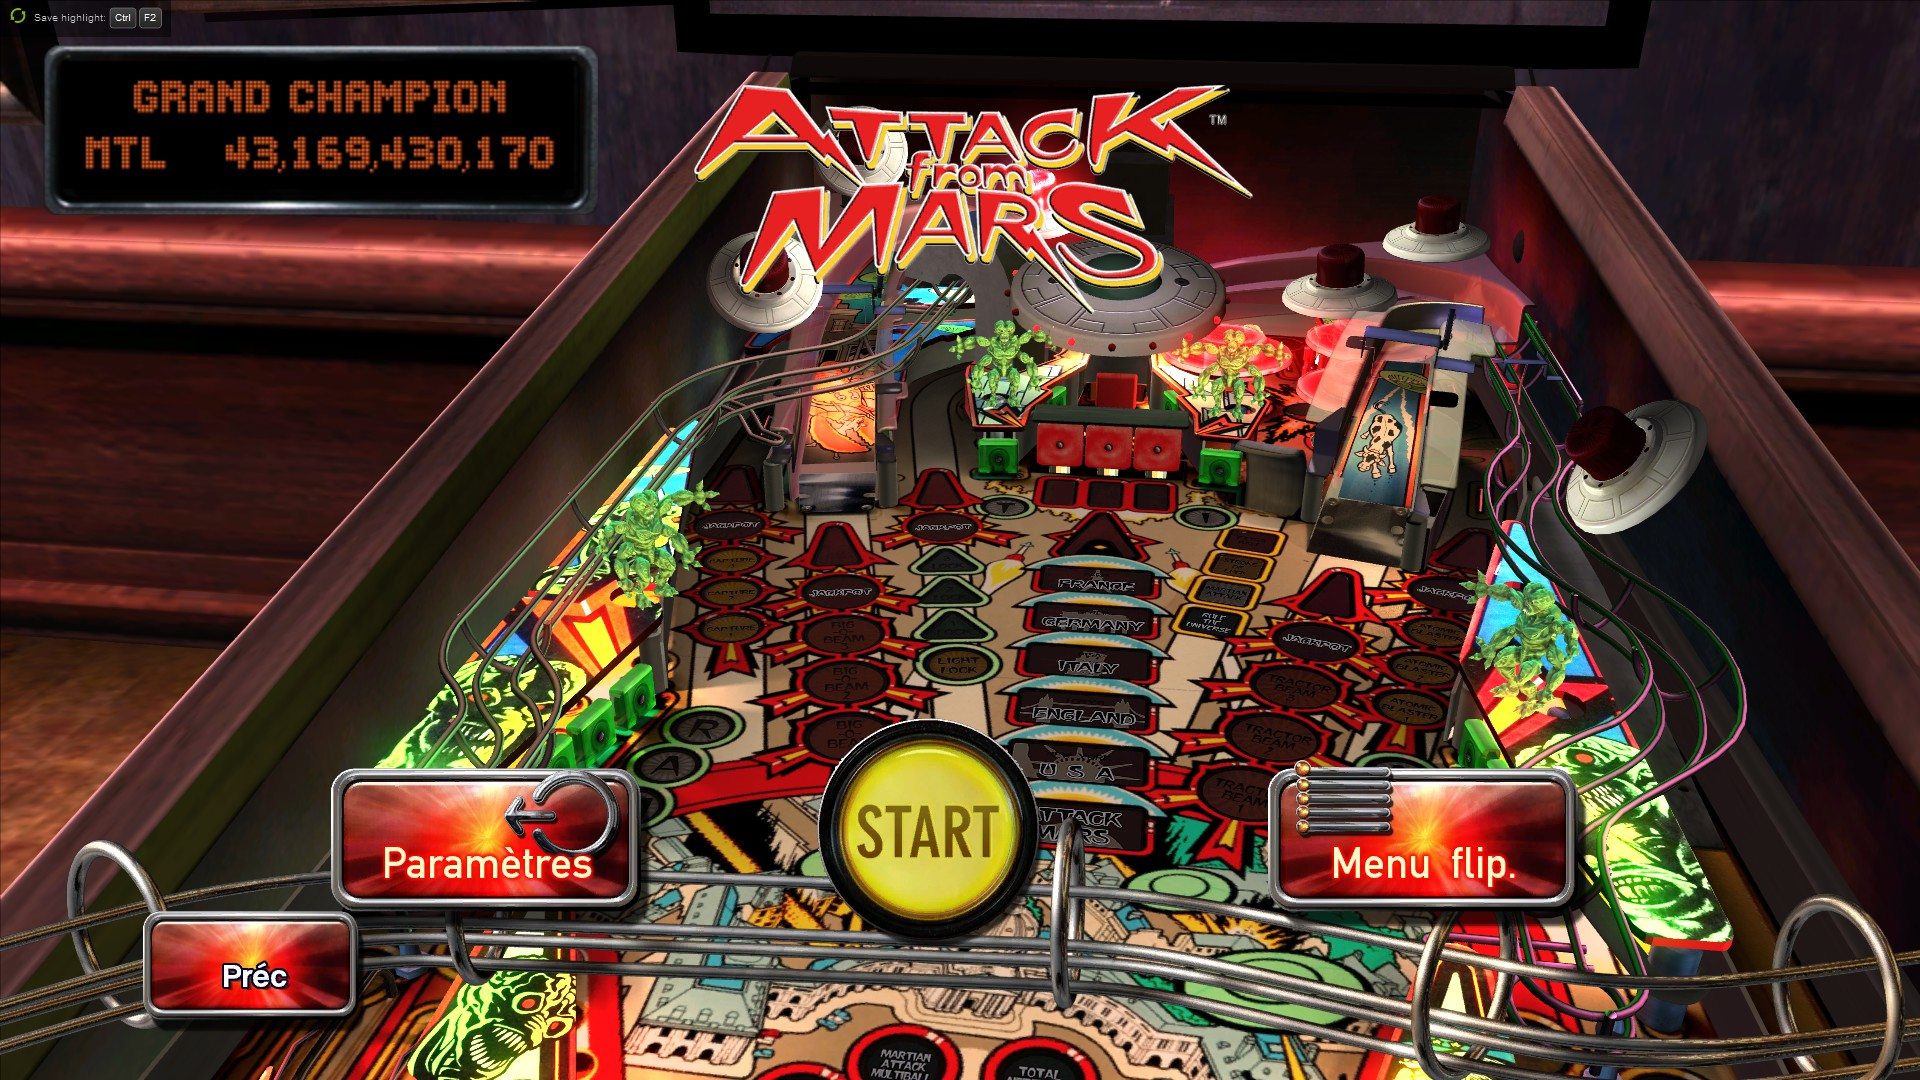 Mantalow: Pinball Arcade: Attack From Mars (PC) 43,169,430,170 points on 2015-08-27 10:50:39